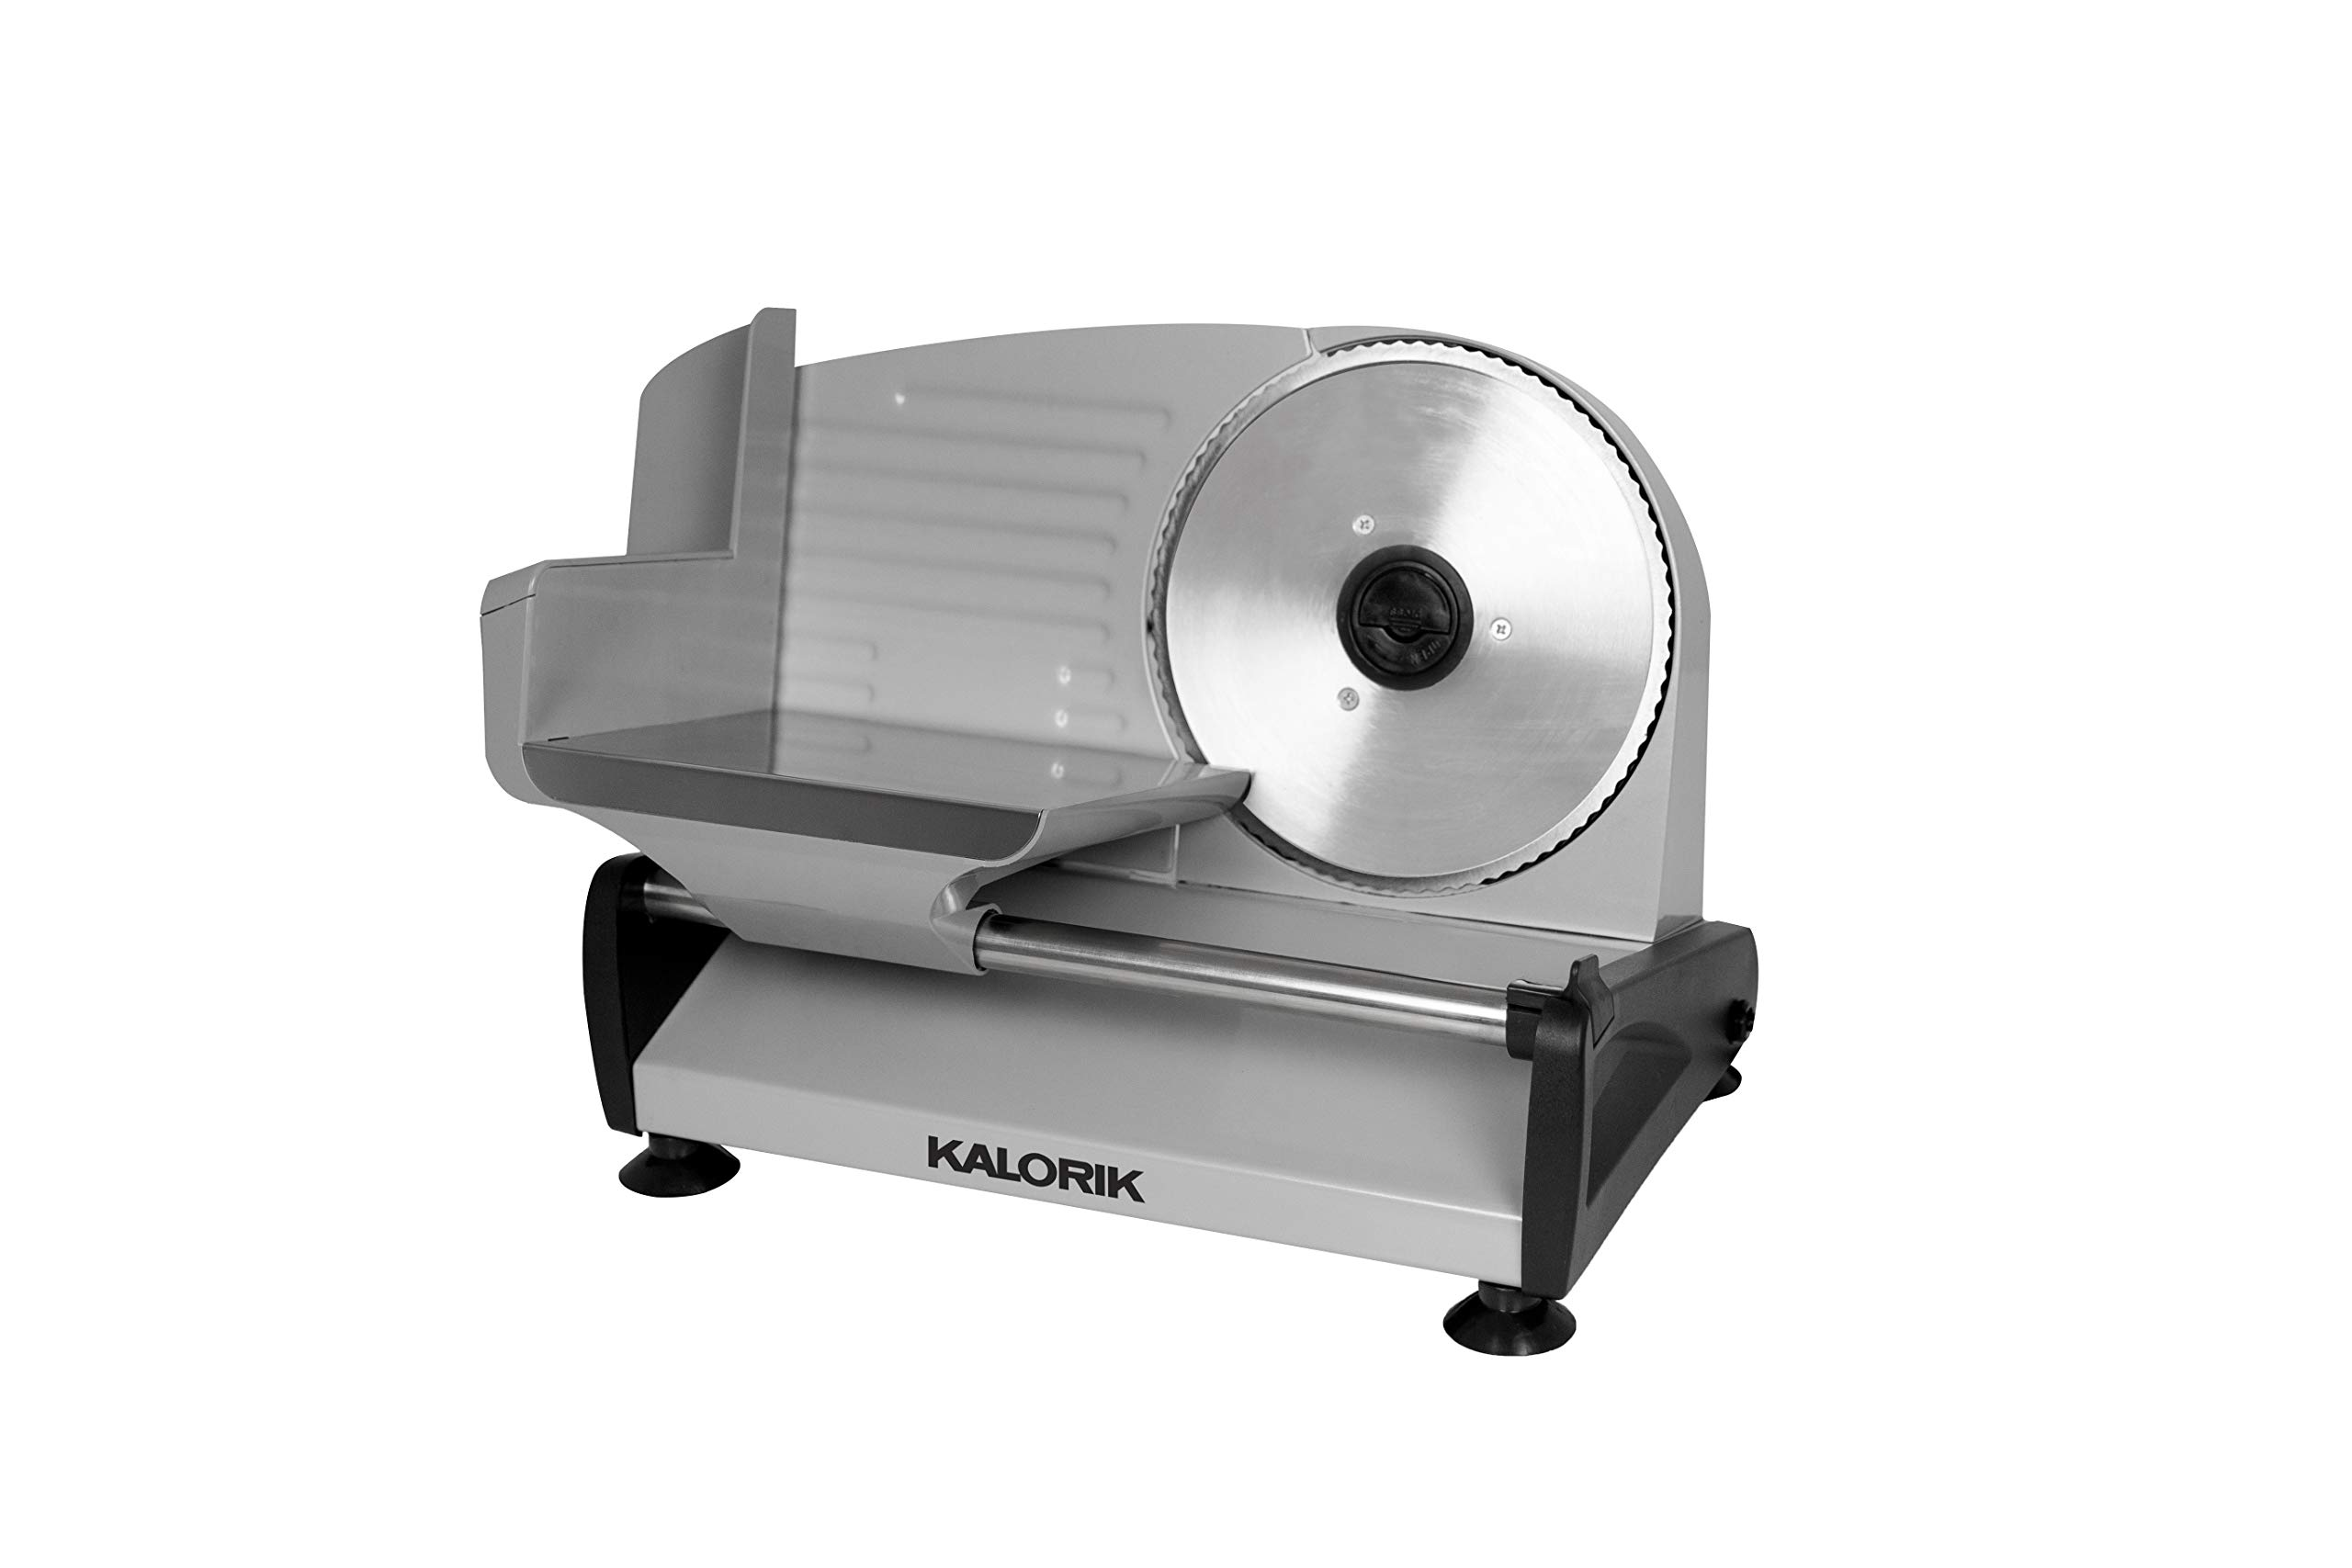 Kalorik 200 W Professional Food Slicer, Silver by Kalorik